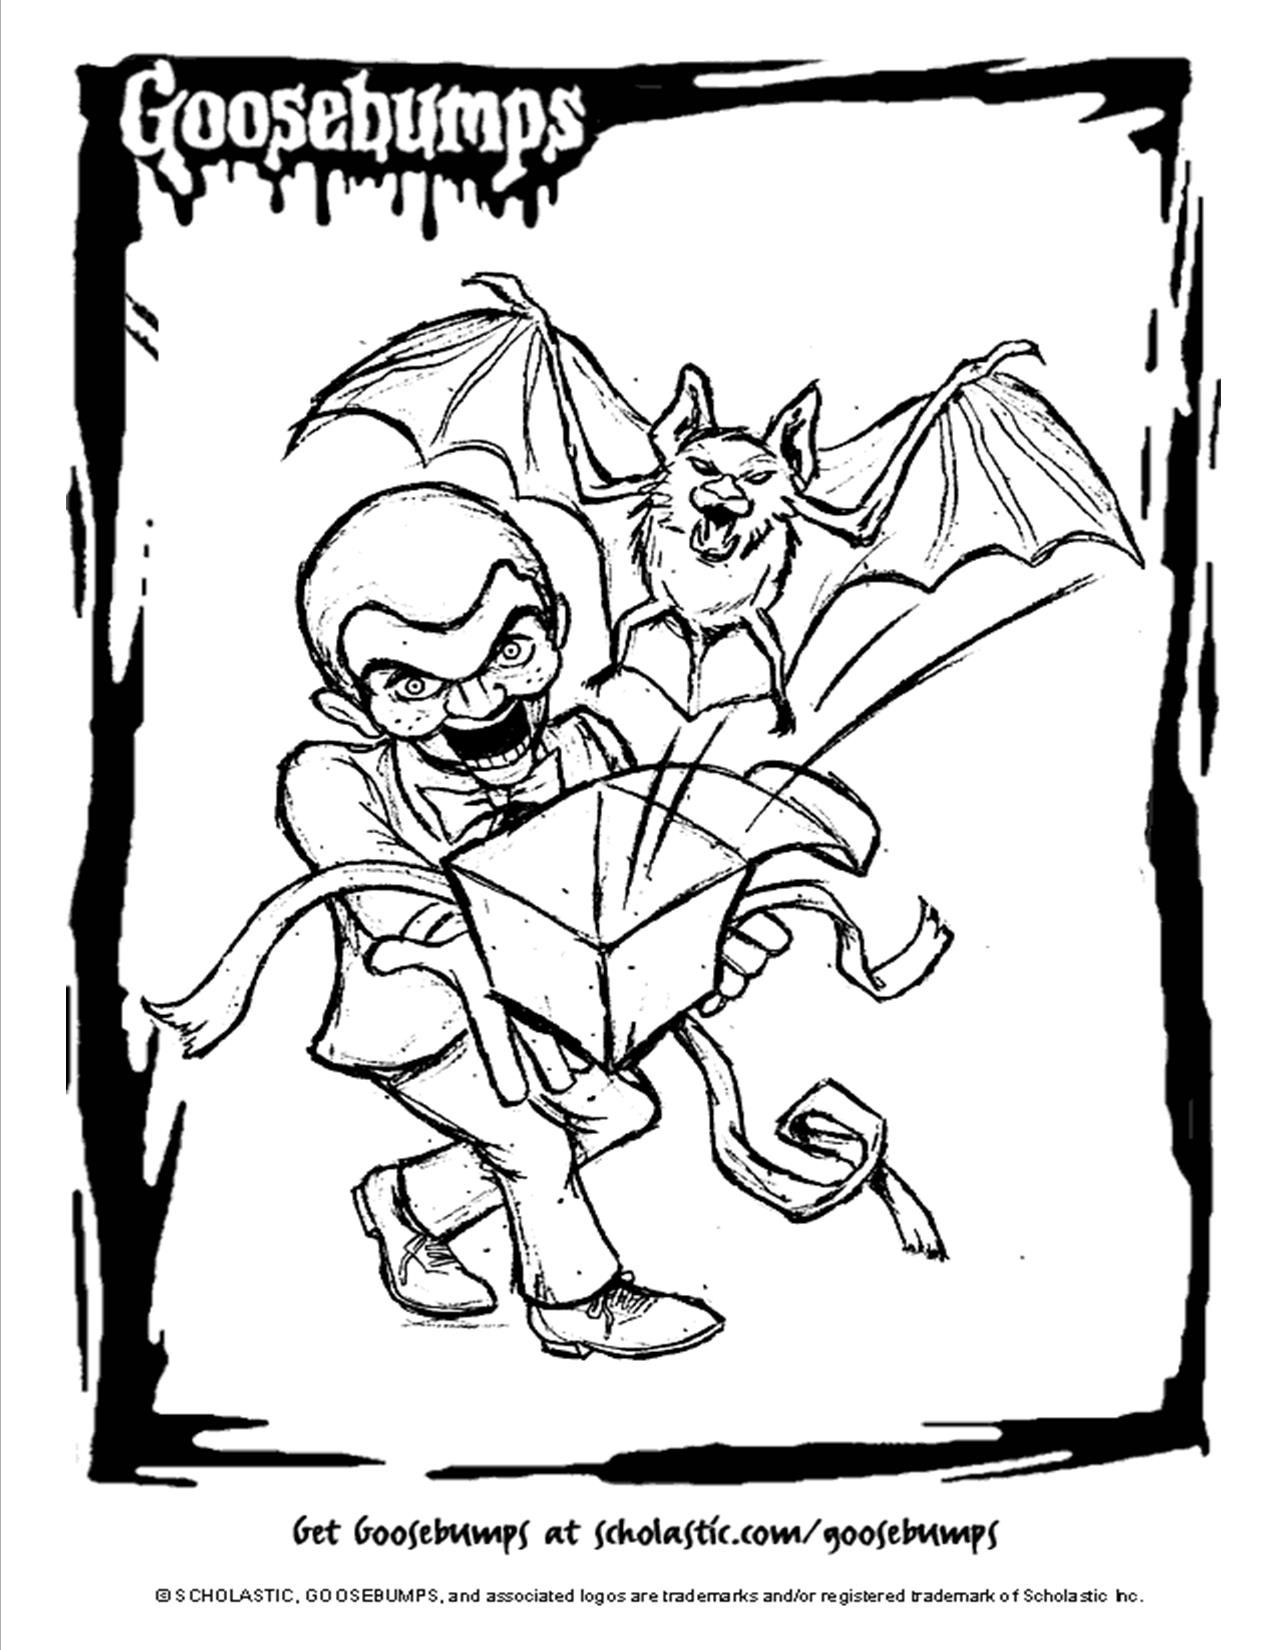 Scholastic Books Goosebumps Coloring Page Cartoon Coloring Pages Coloring Pages Lego Coloring Pages